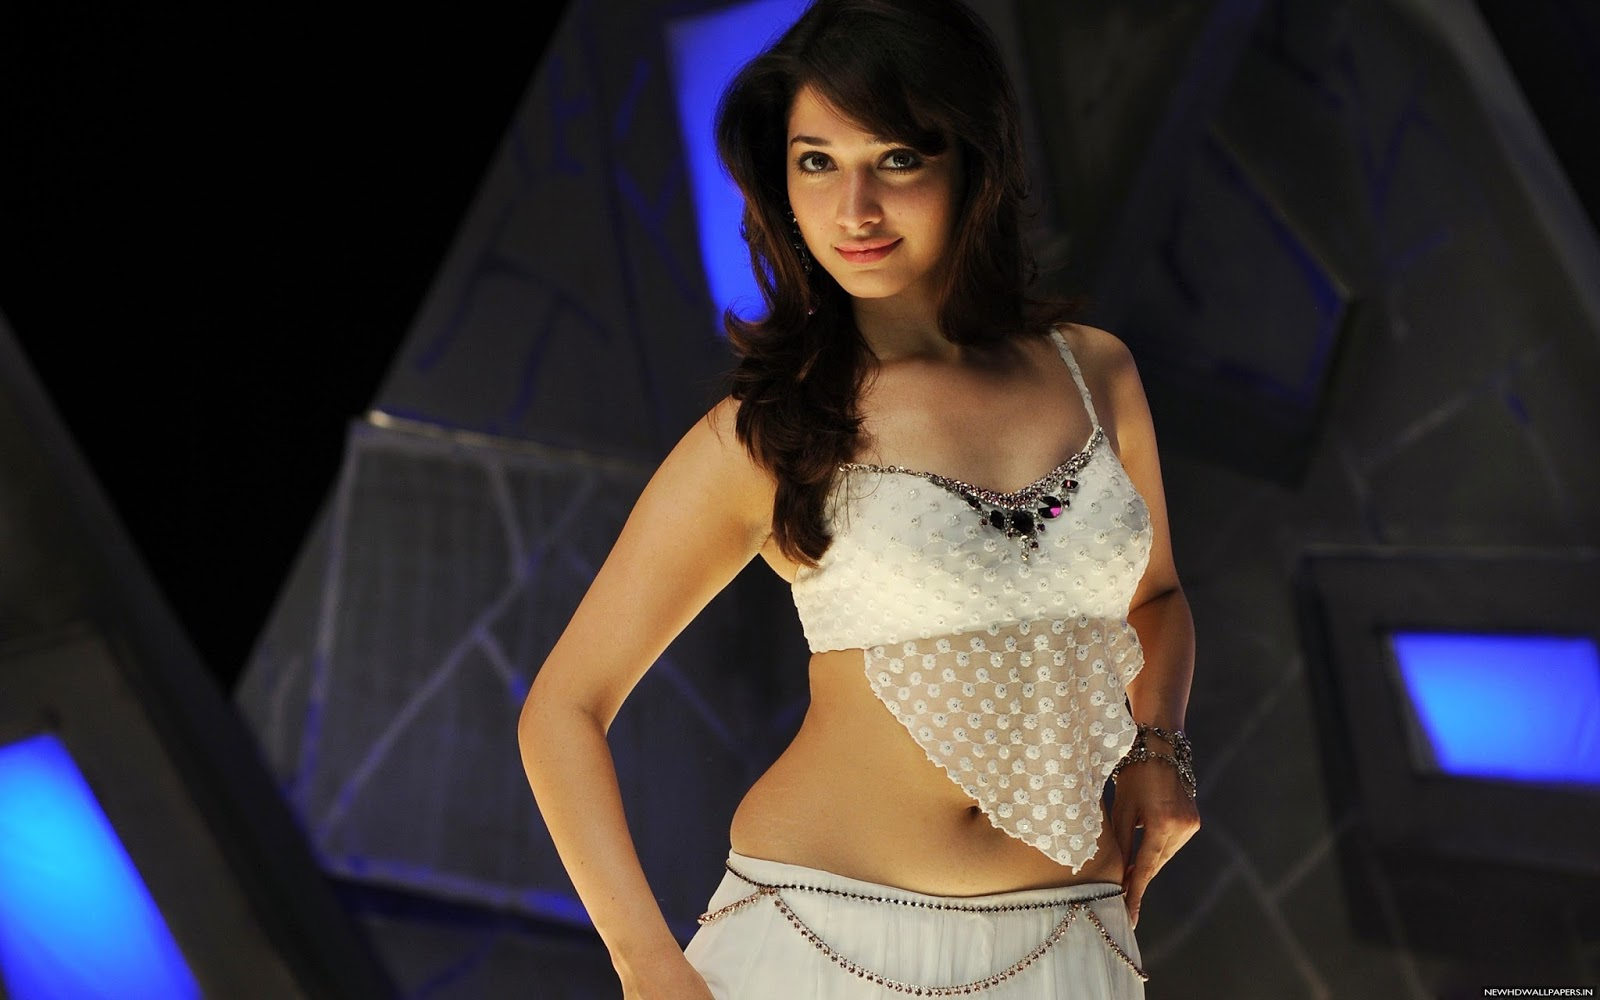 tamanna hd wallpapers - hd wallpapers download